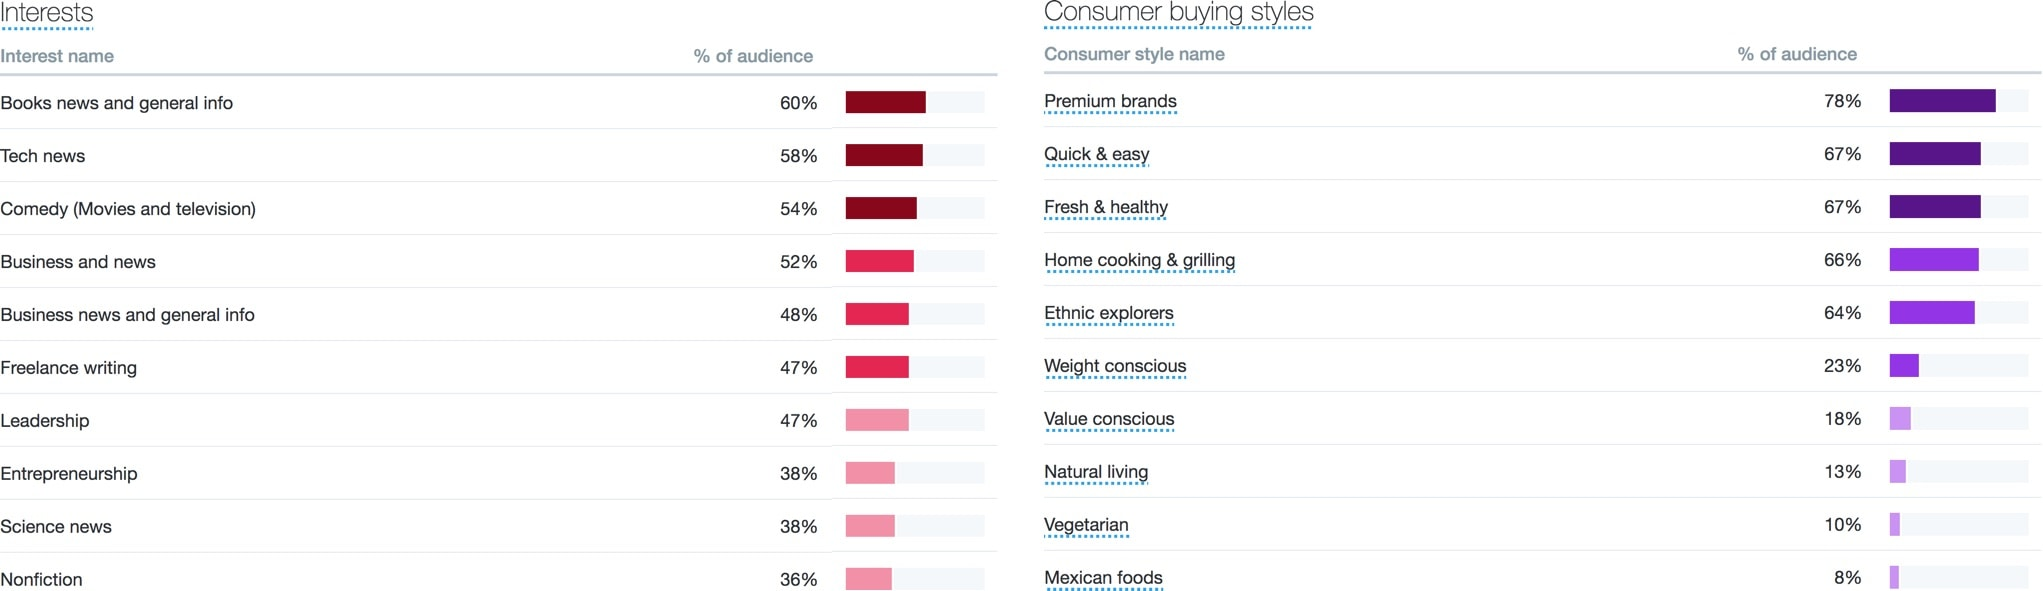 Twitter Analytics: Audience interests and consumer buying styles for @espirian, June 2018